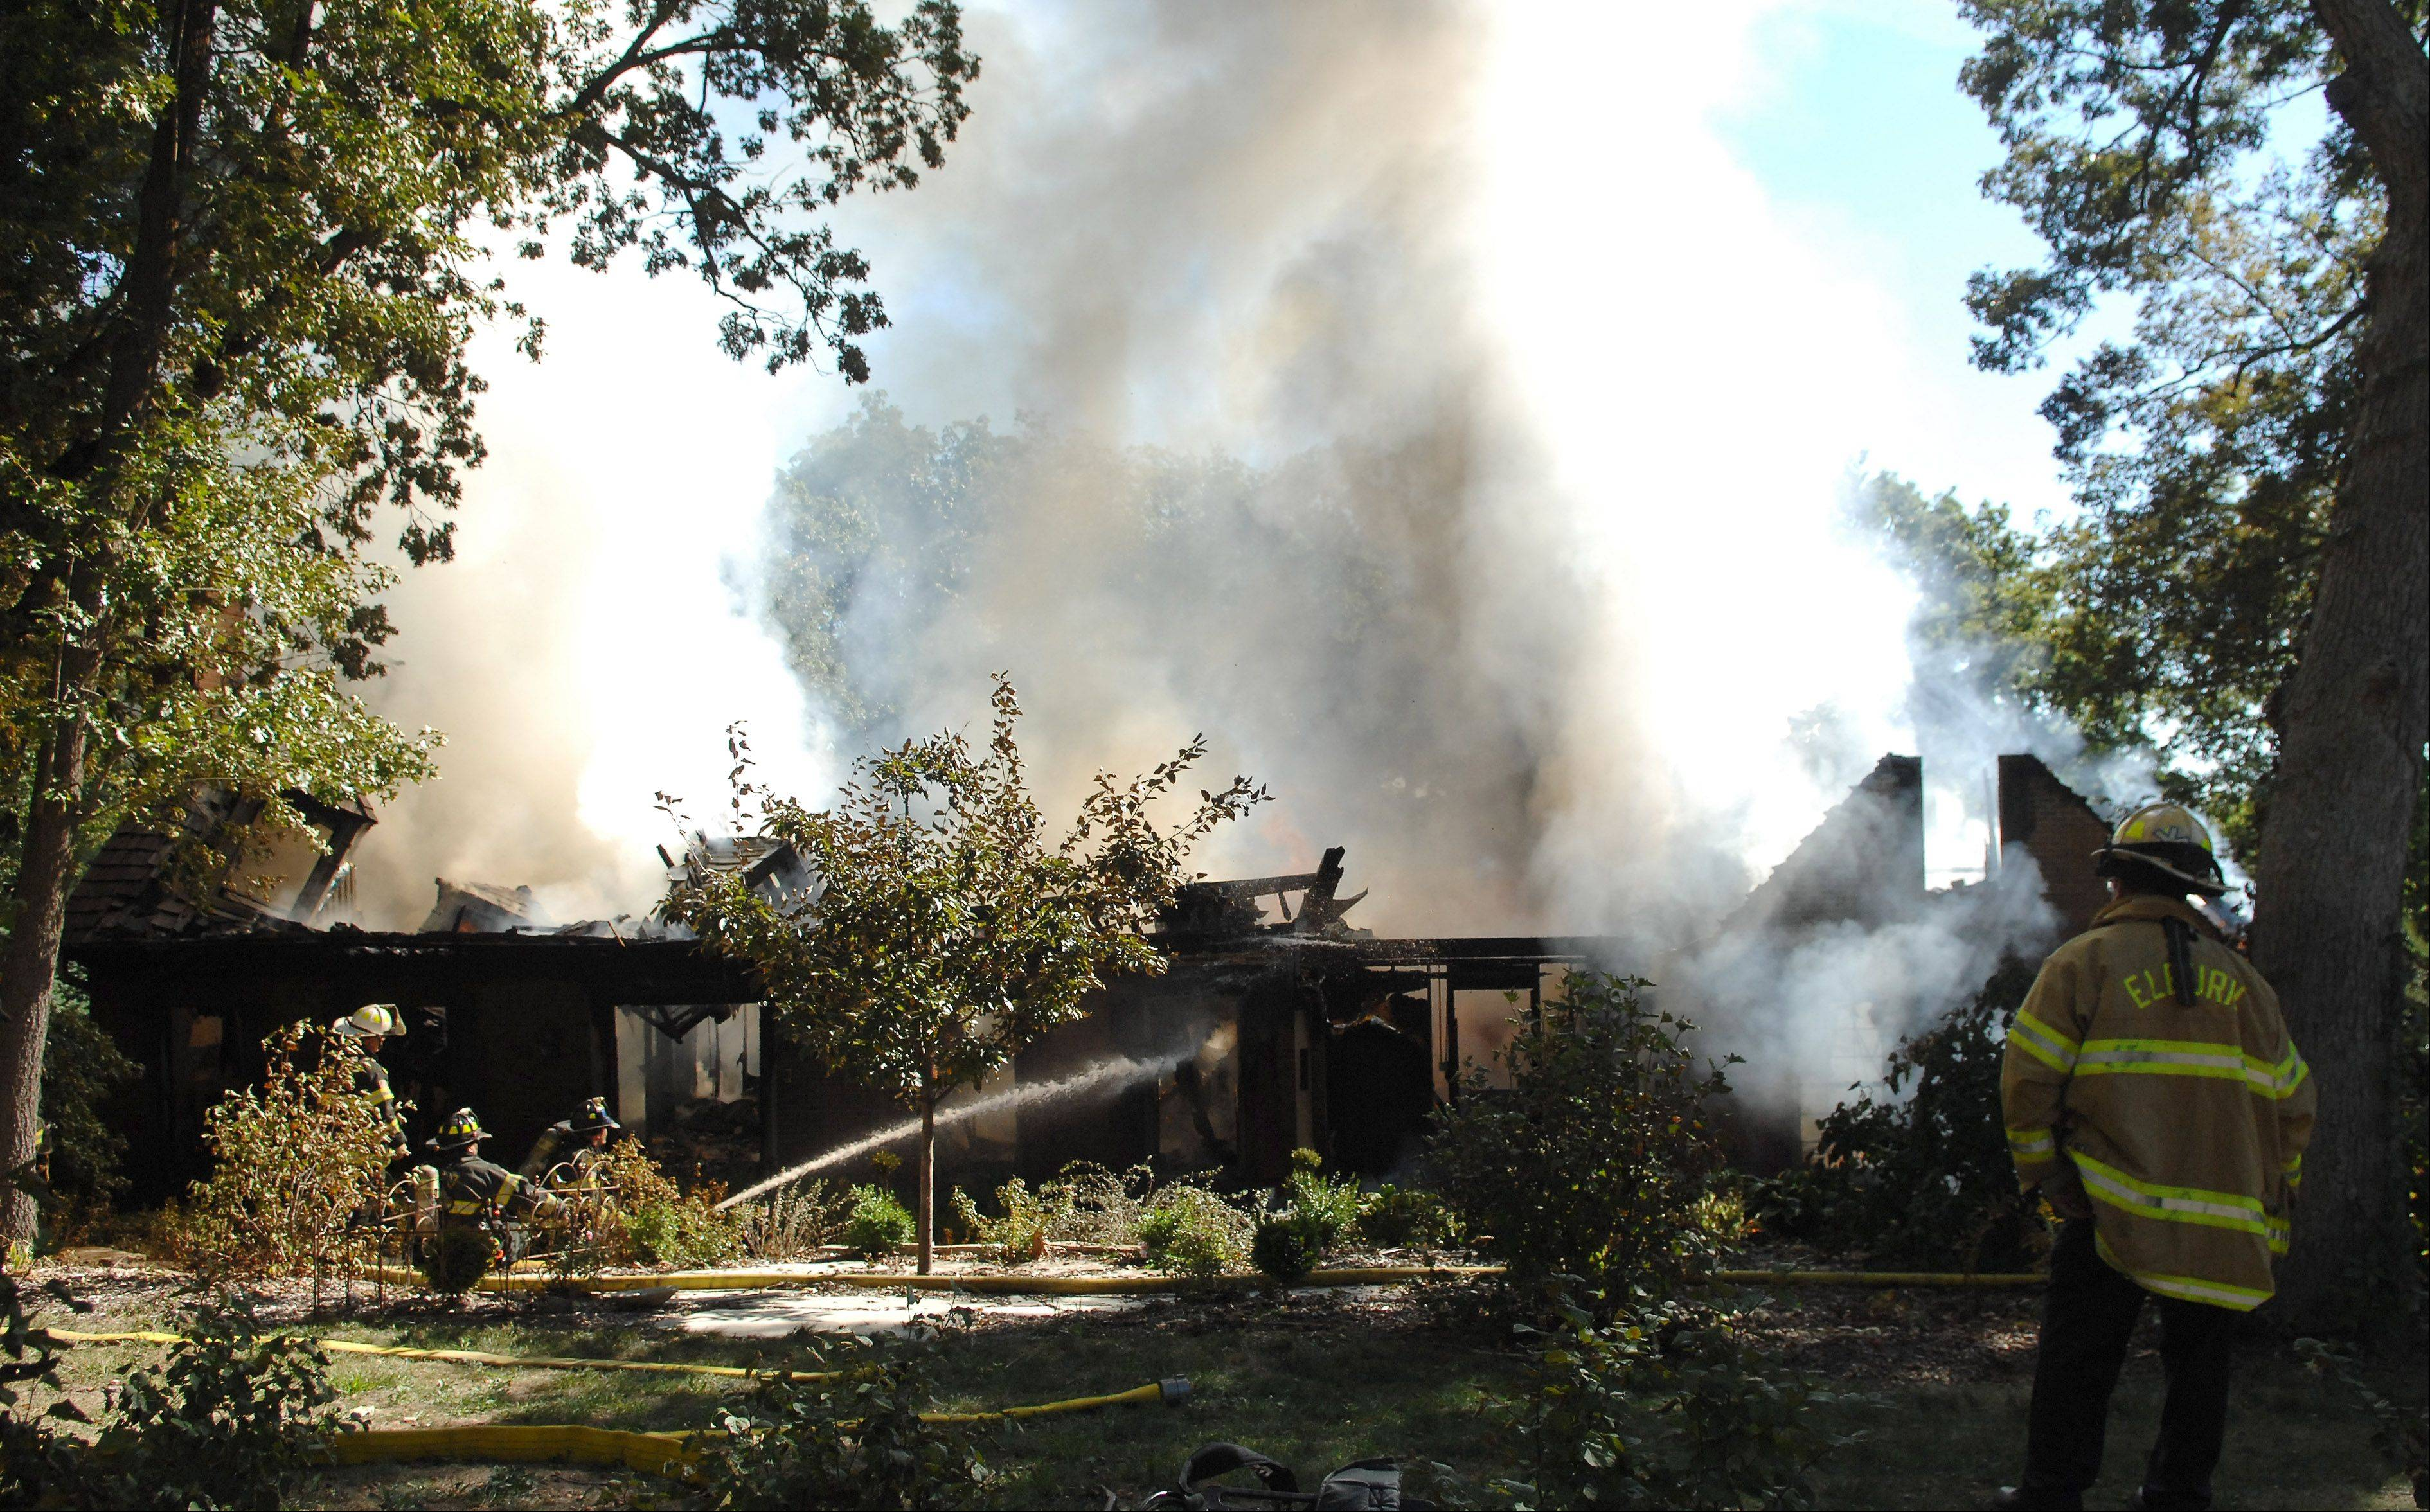 A house fire Monday morning on Spring Wood Lane in Campton Hills destroyed the home. A couple was home at the time of the fire and escaped.